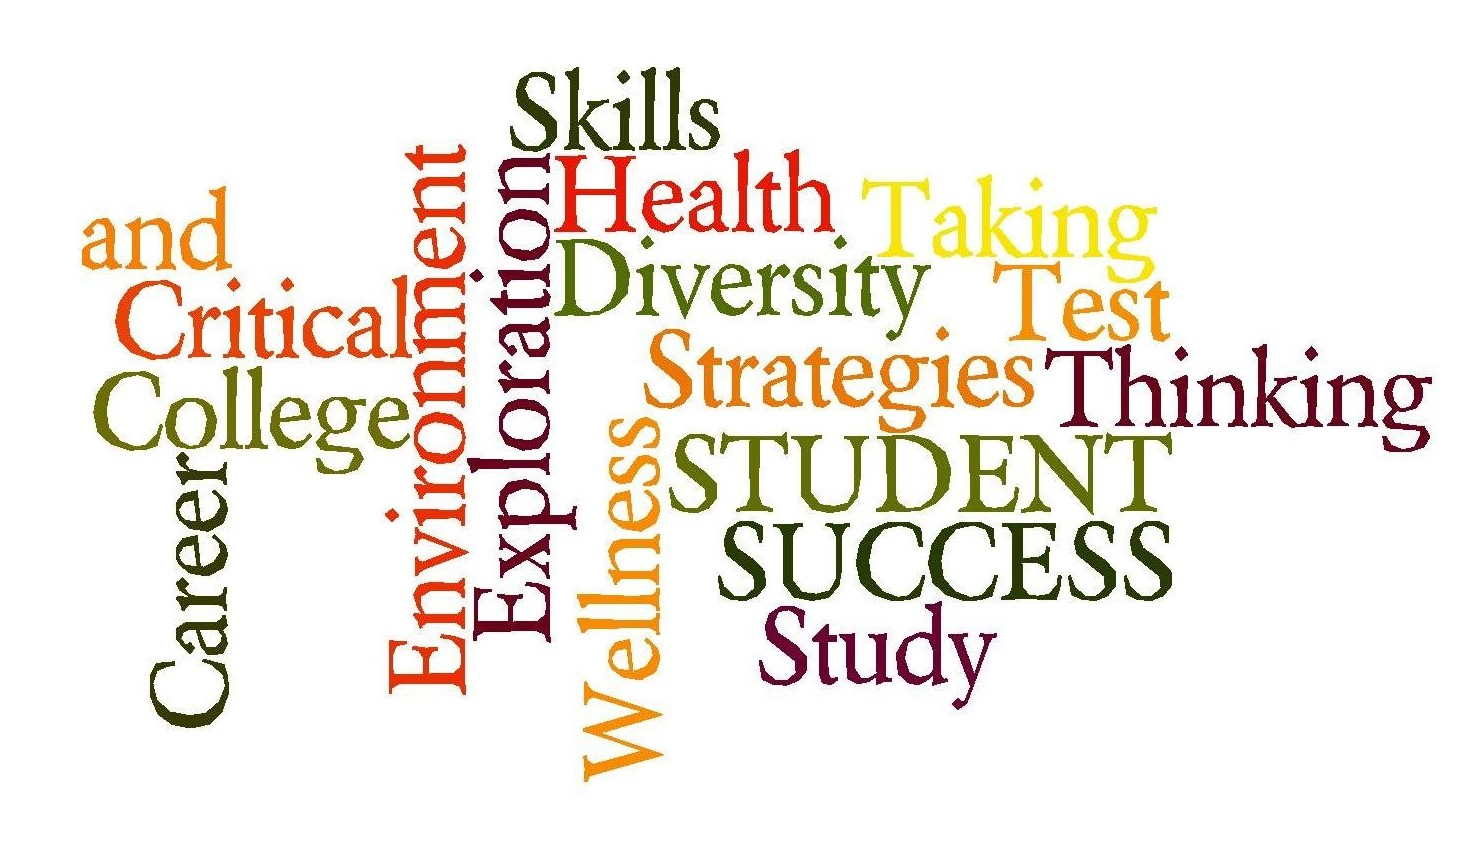 Student Success Word Cloud